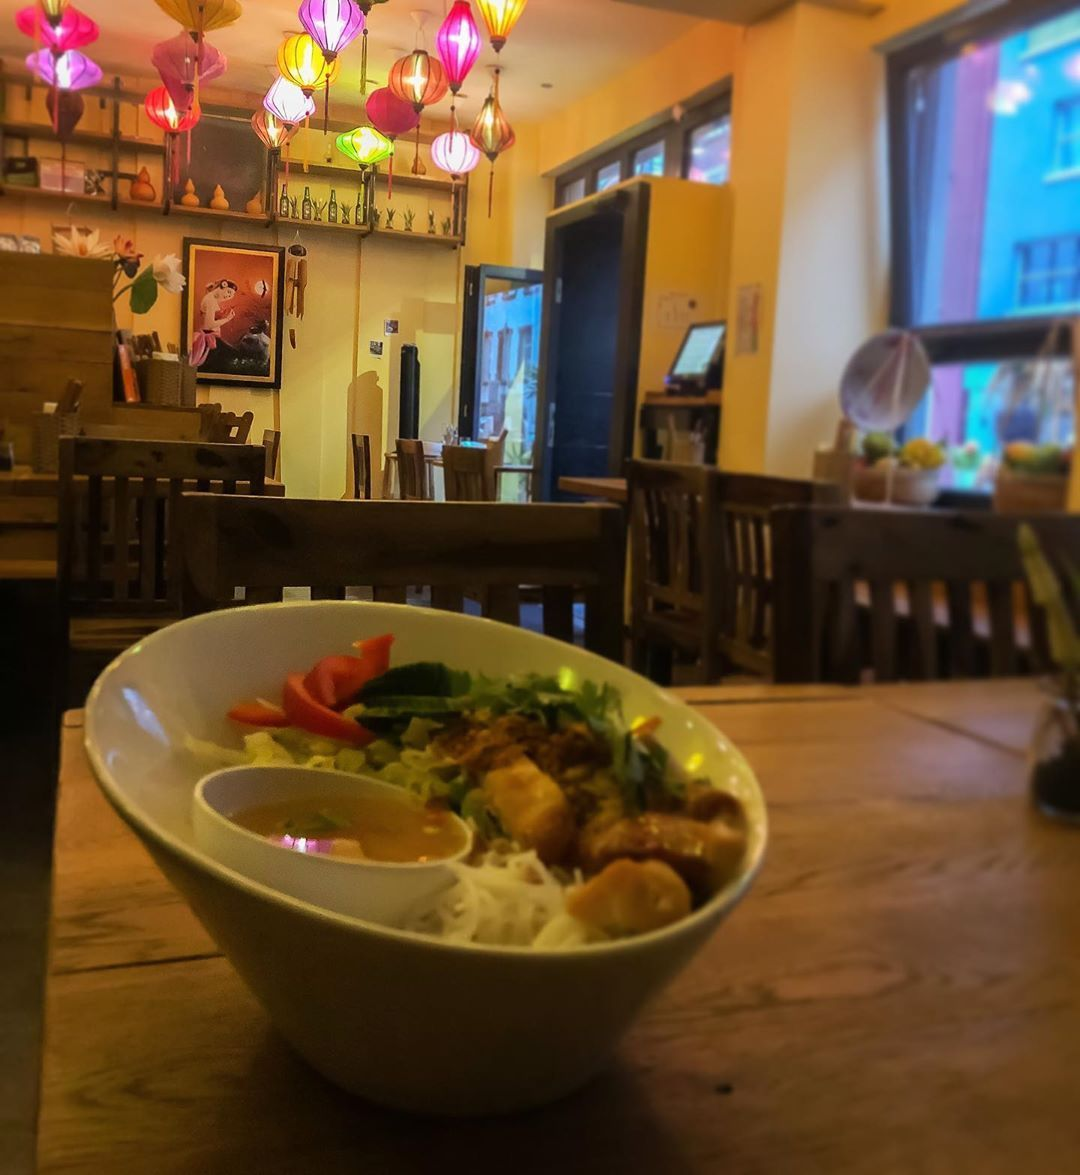 Vietnamese food at @saigon_xua_ffm  in #Frankfurt. A nice place to go for a dinner! 🥘 🍜 - - - #viets...